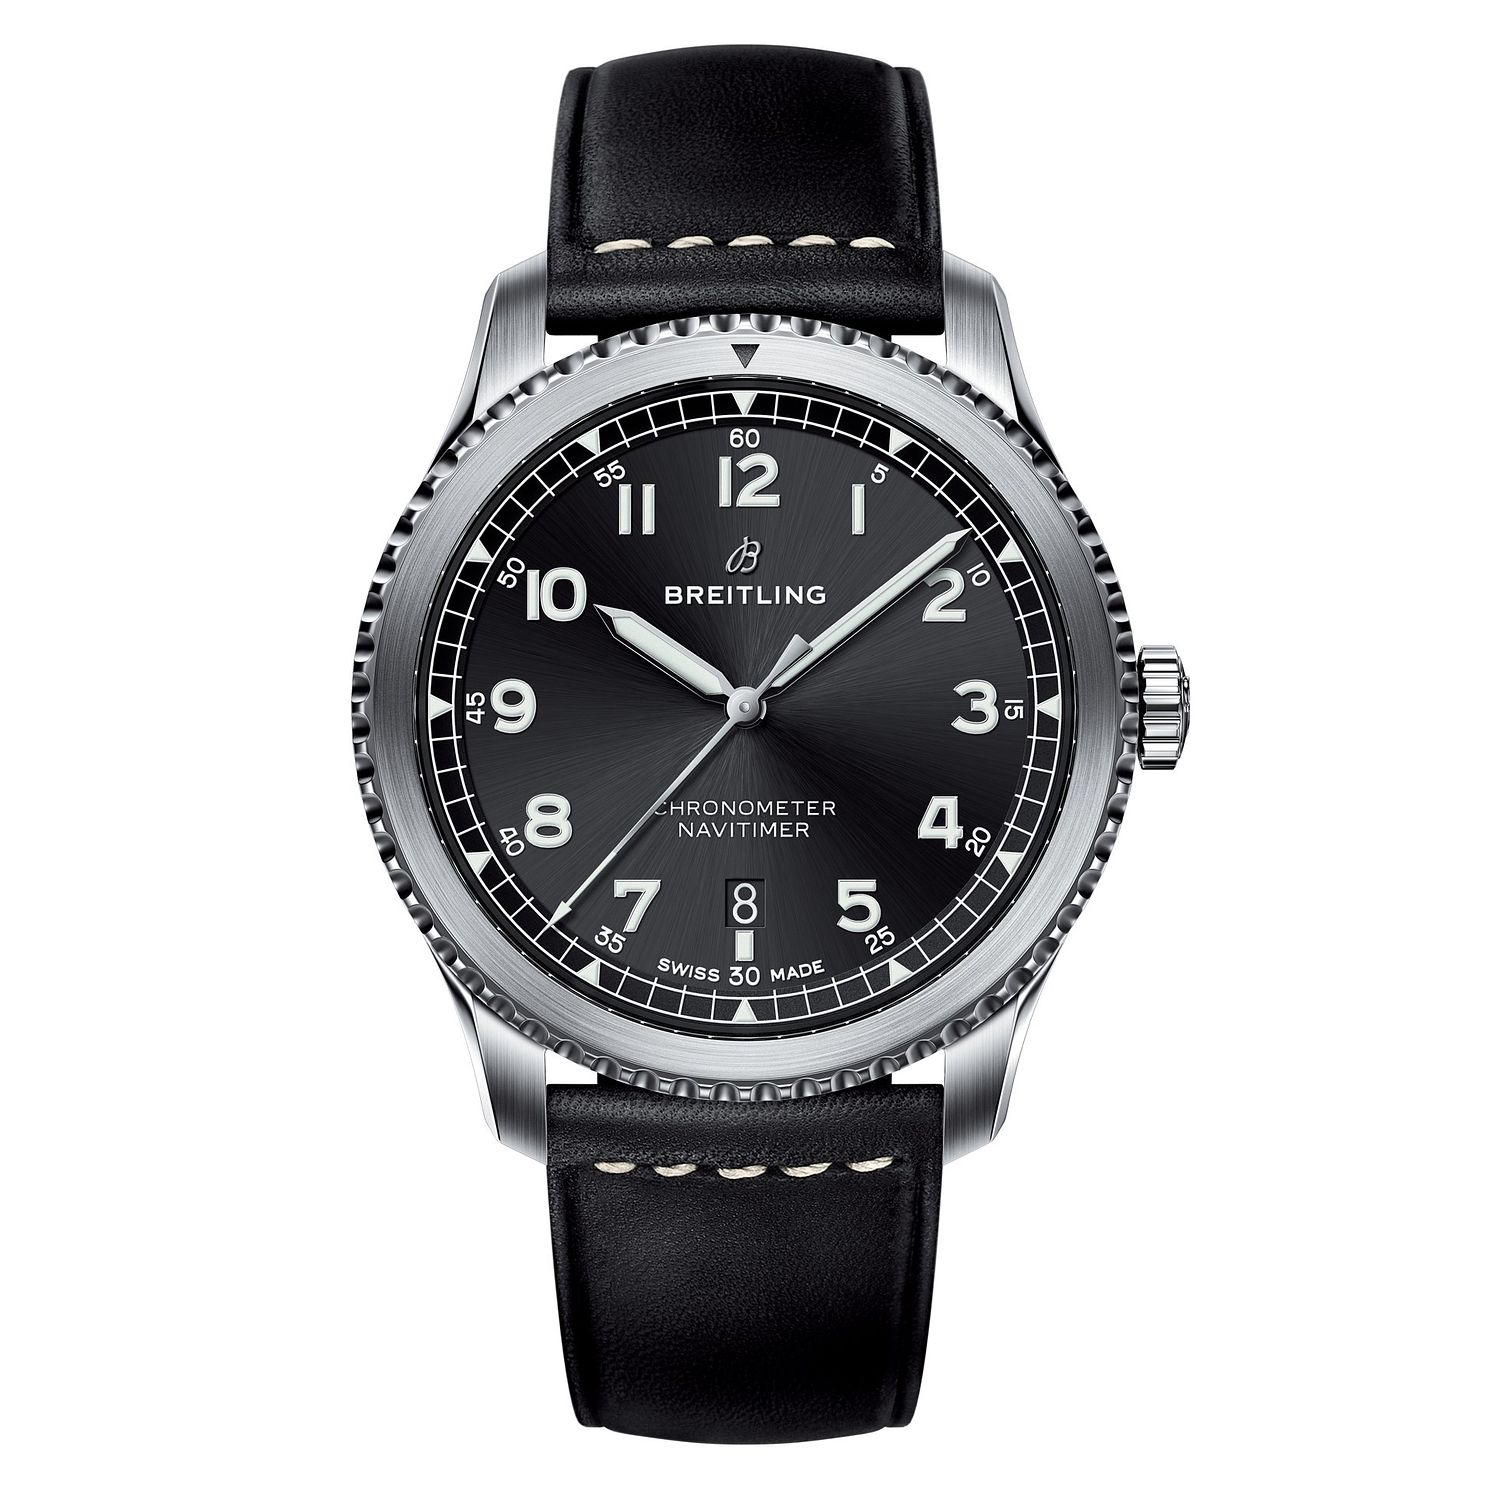 Breitling Aviator 8 Men's Black Leather Strap Watch - Product number 8561338